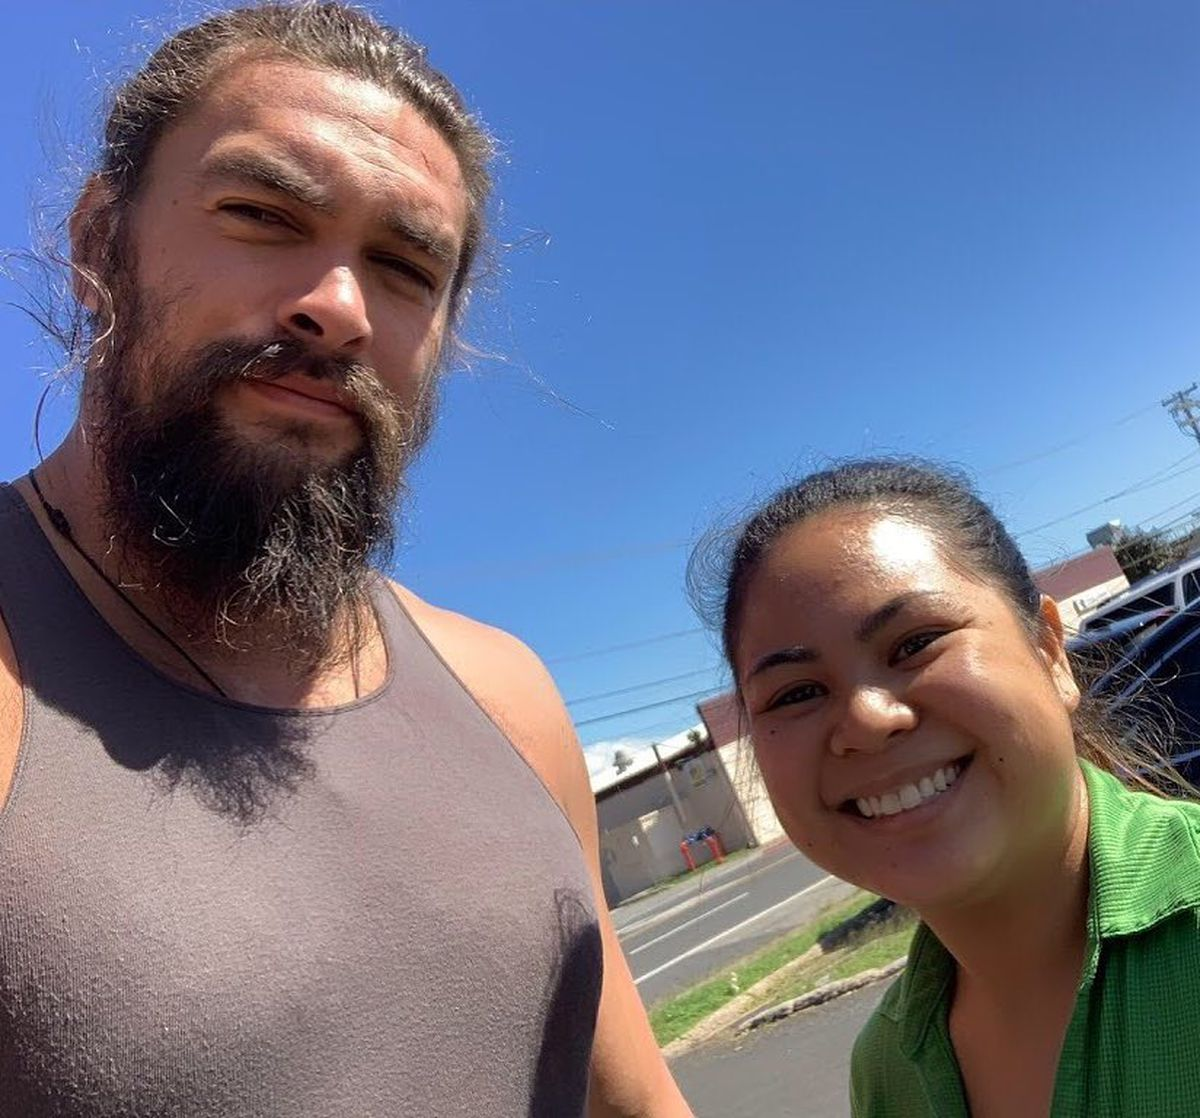 Jason Momoa Pink: He's Home! After Dining On Lau Lau And Poke, Jason Momoa